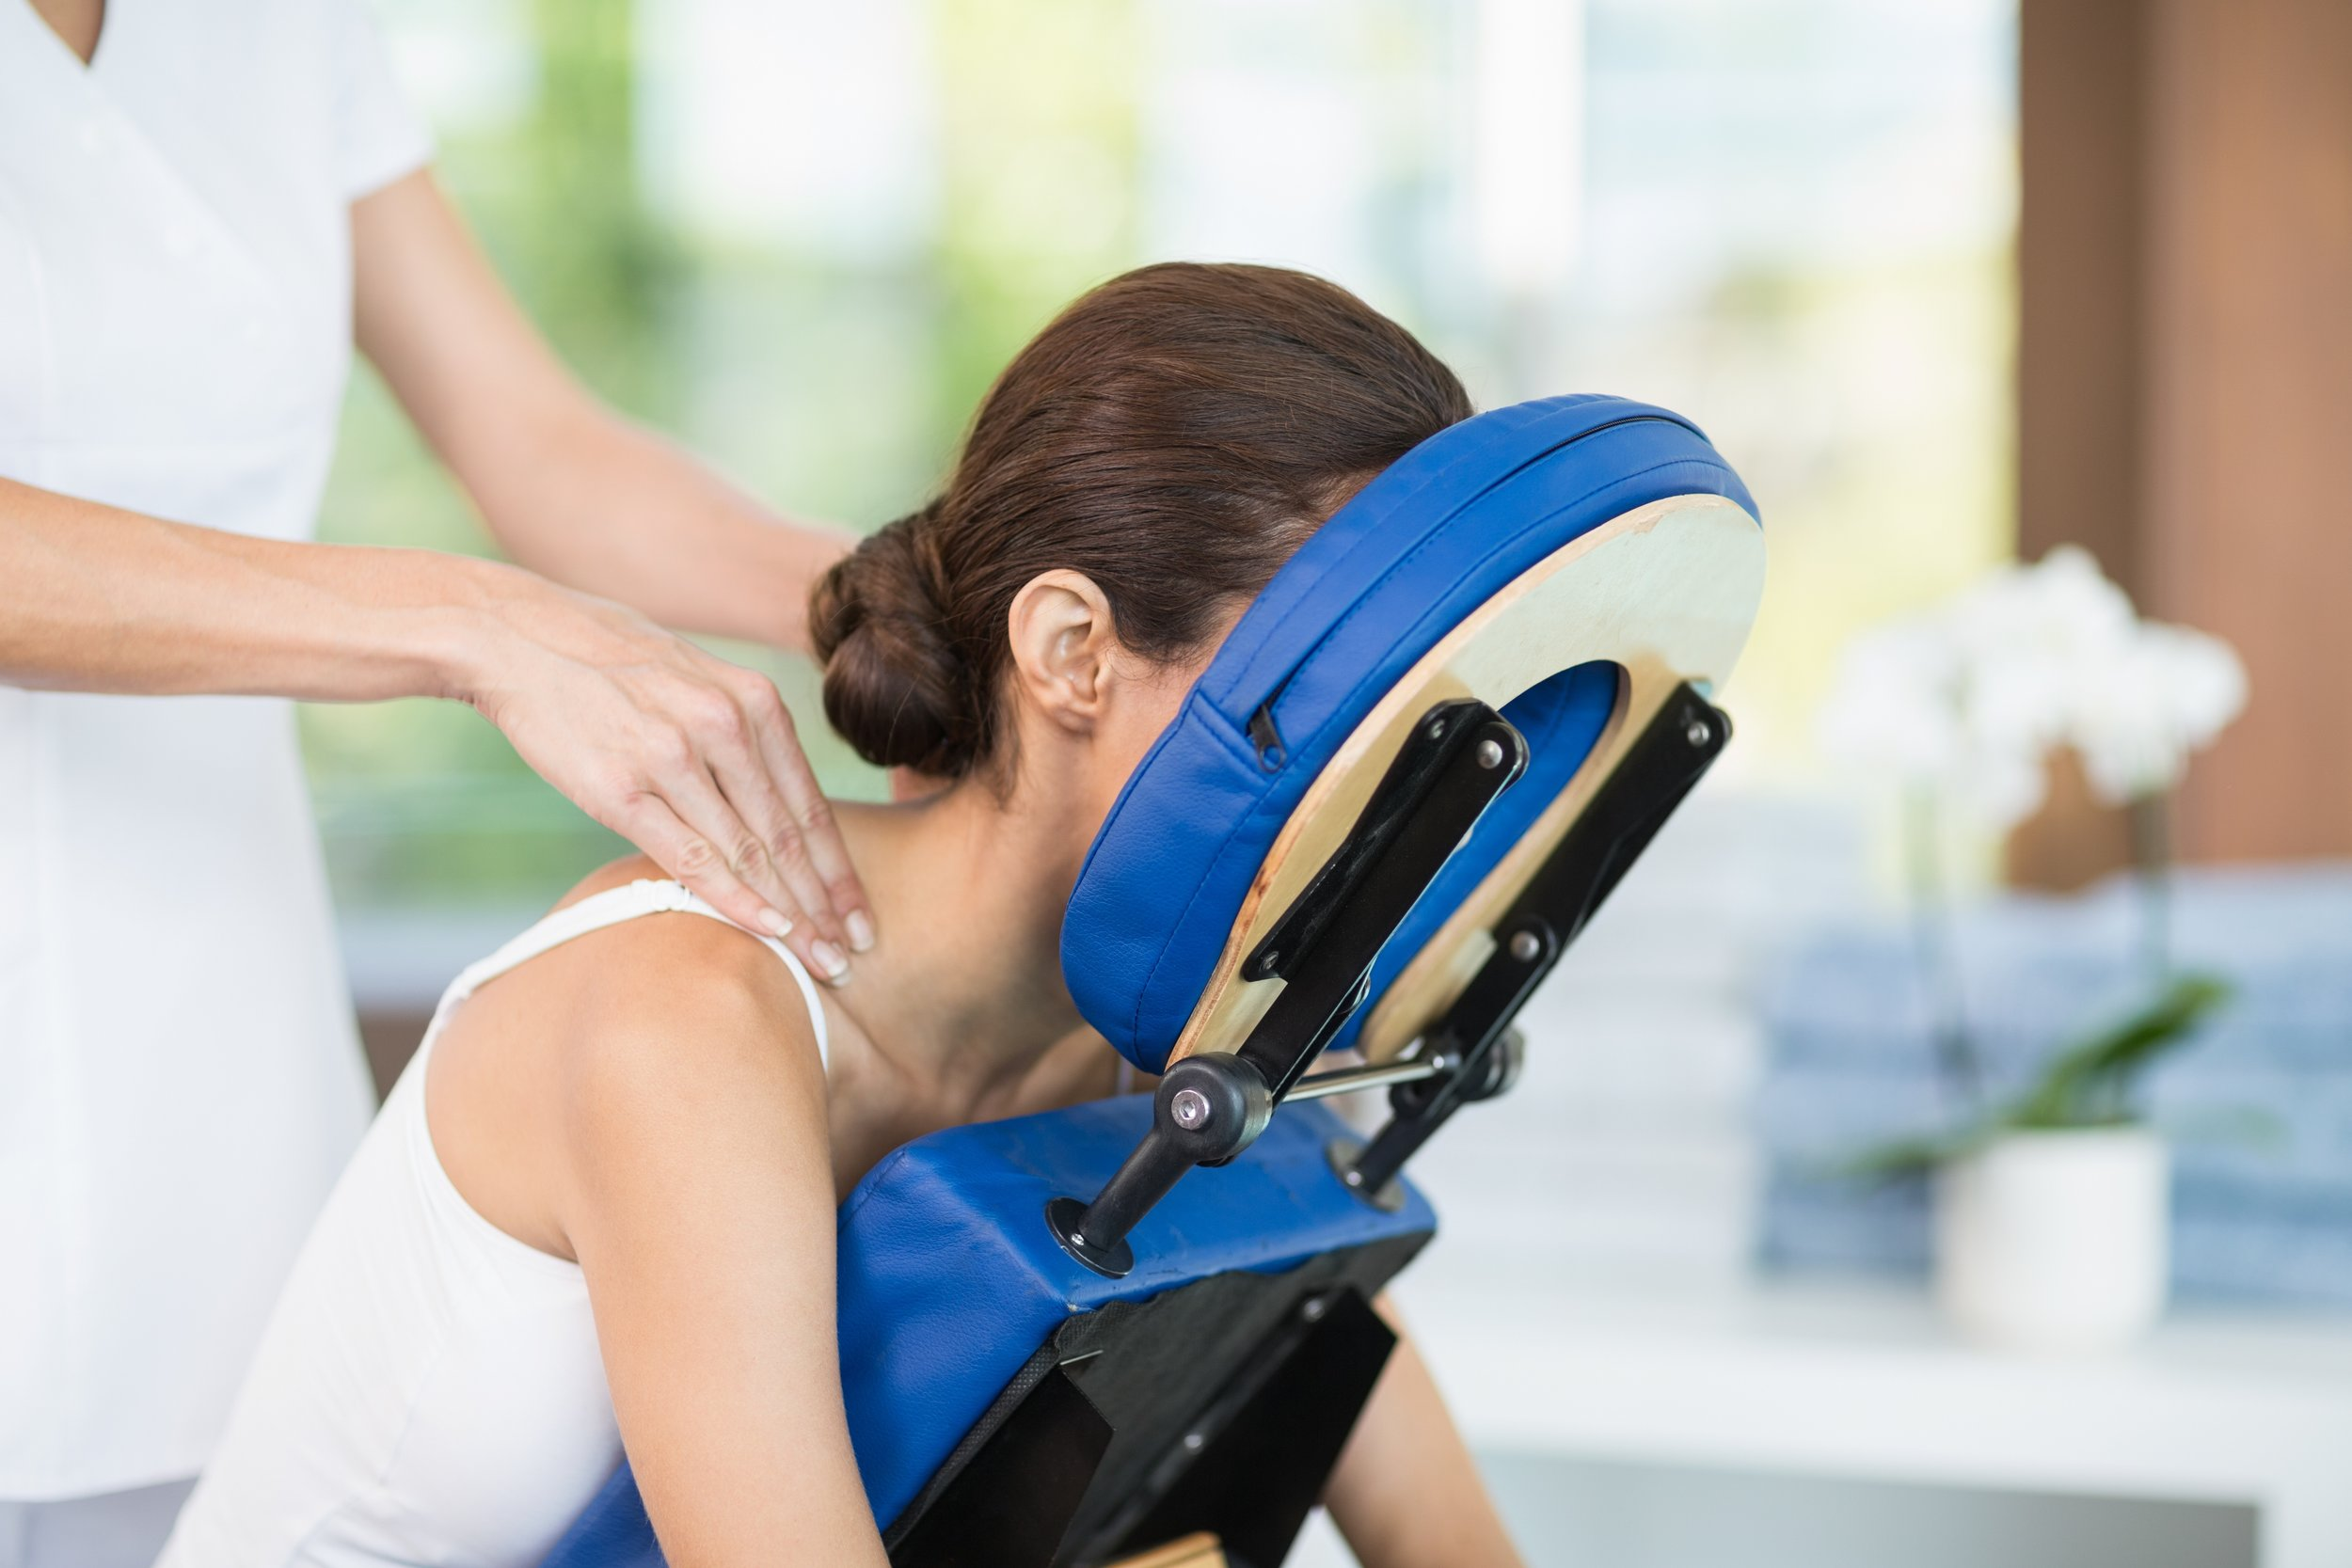 Chair Massage - Enjoy an efficient upper body massage.Rate:$1 per minute, starting at 10 minutes